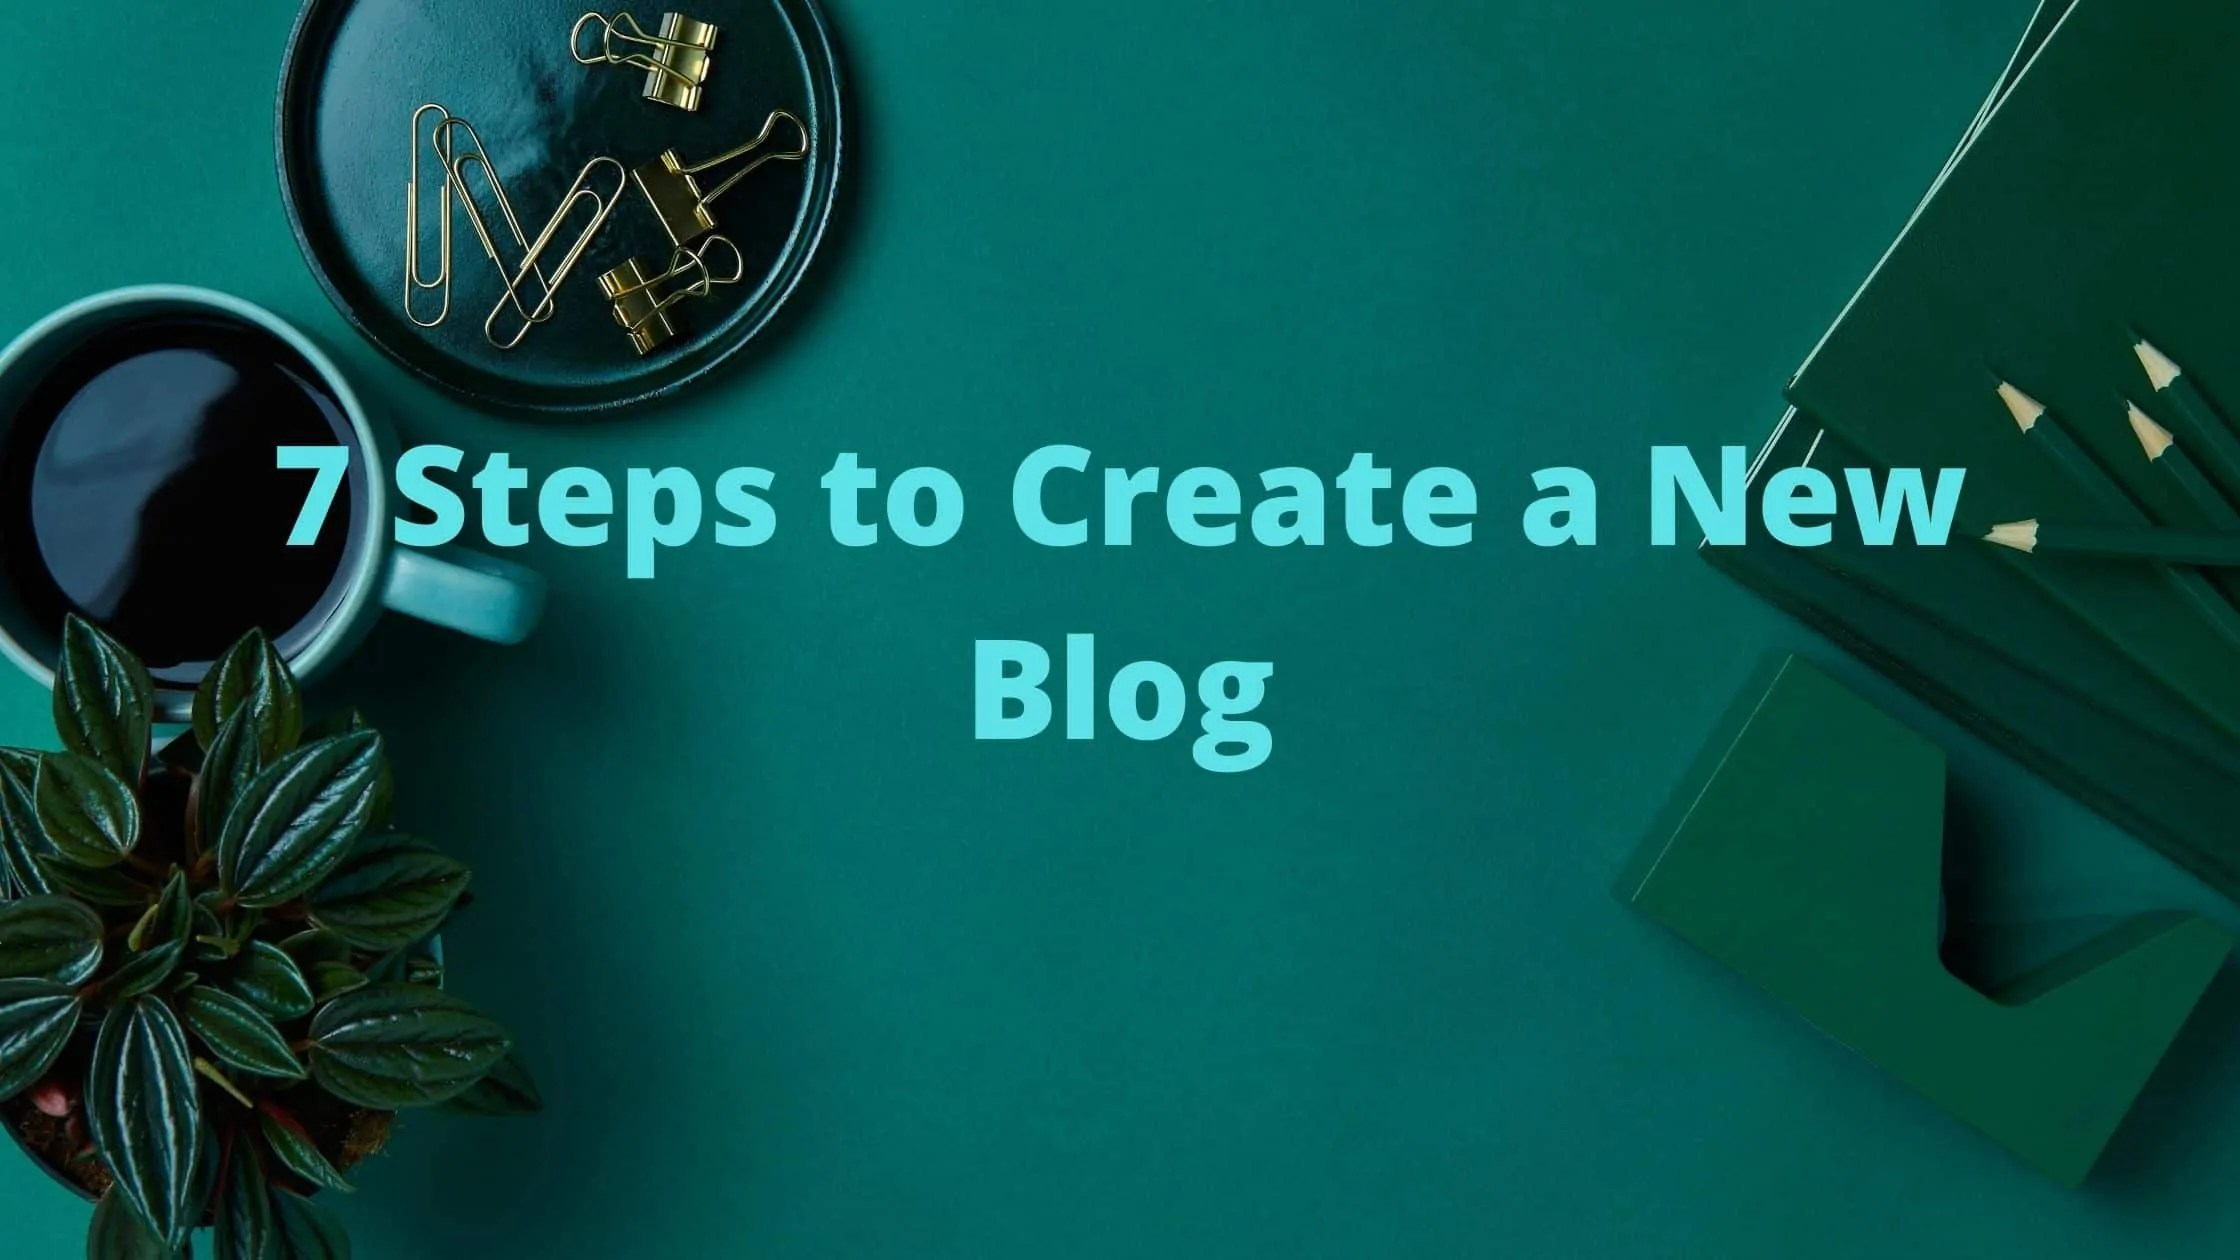 Image with text Create a New Blog